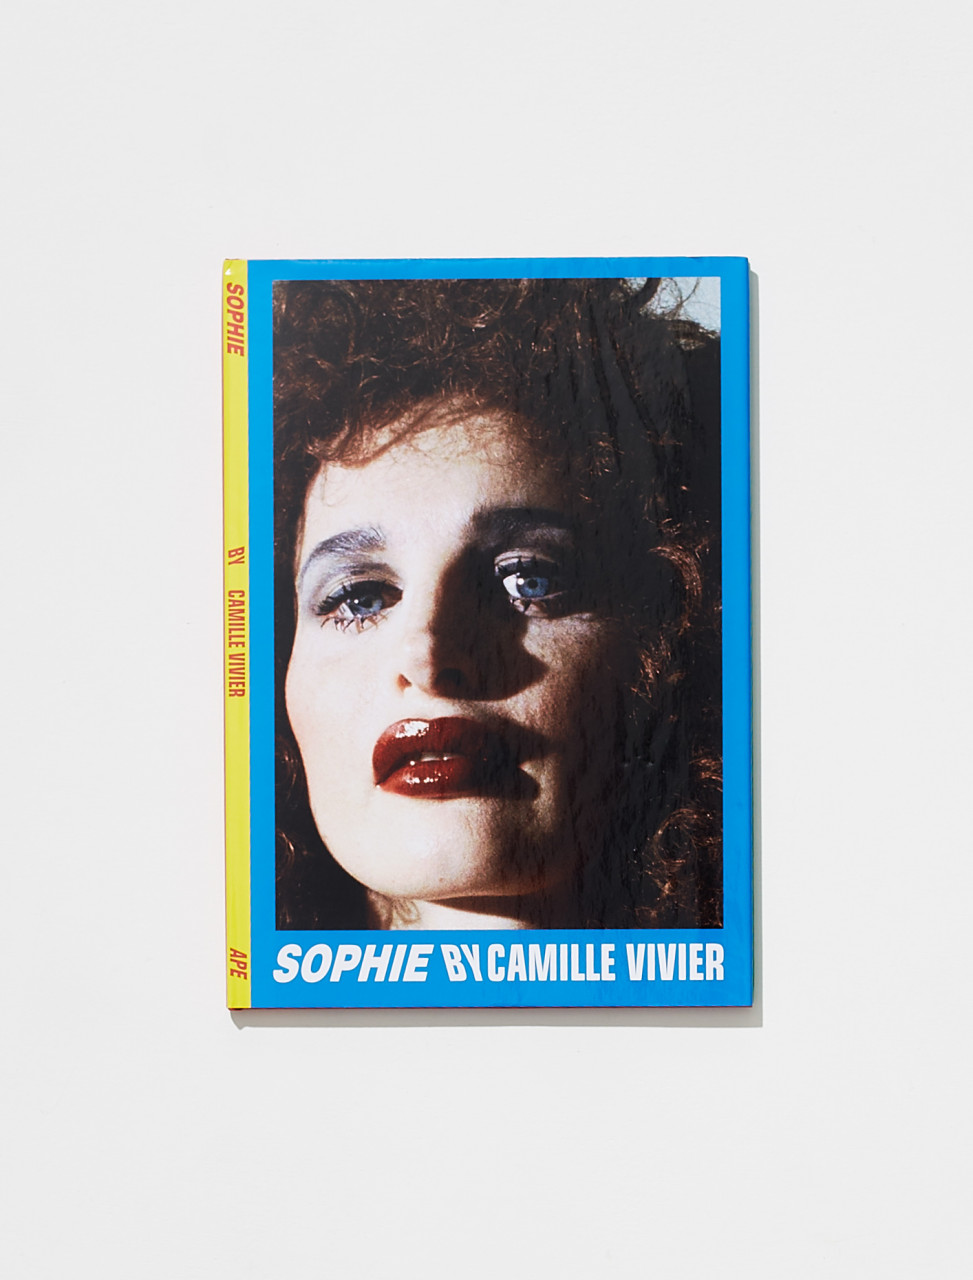 9789493146341 SOPHIE BY CAMILLE VIVIER